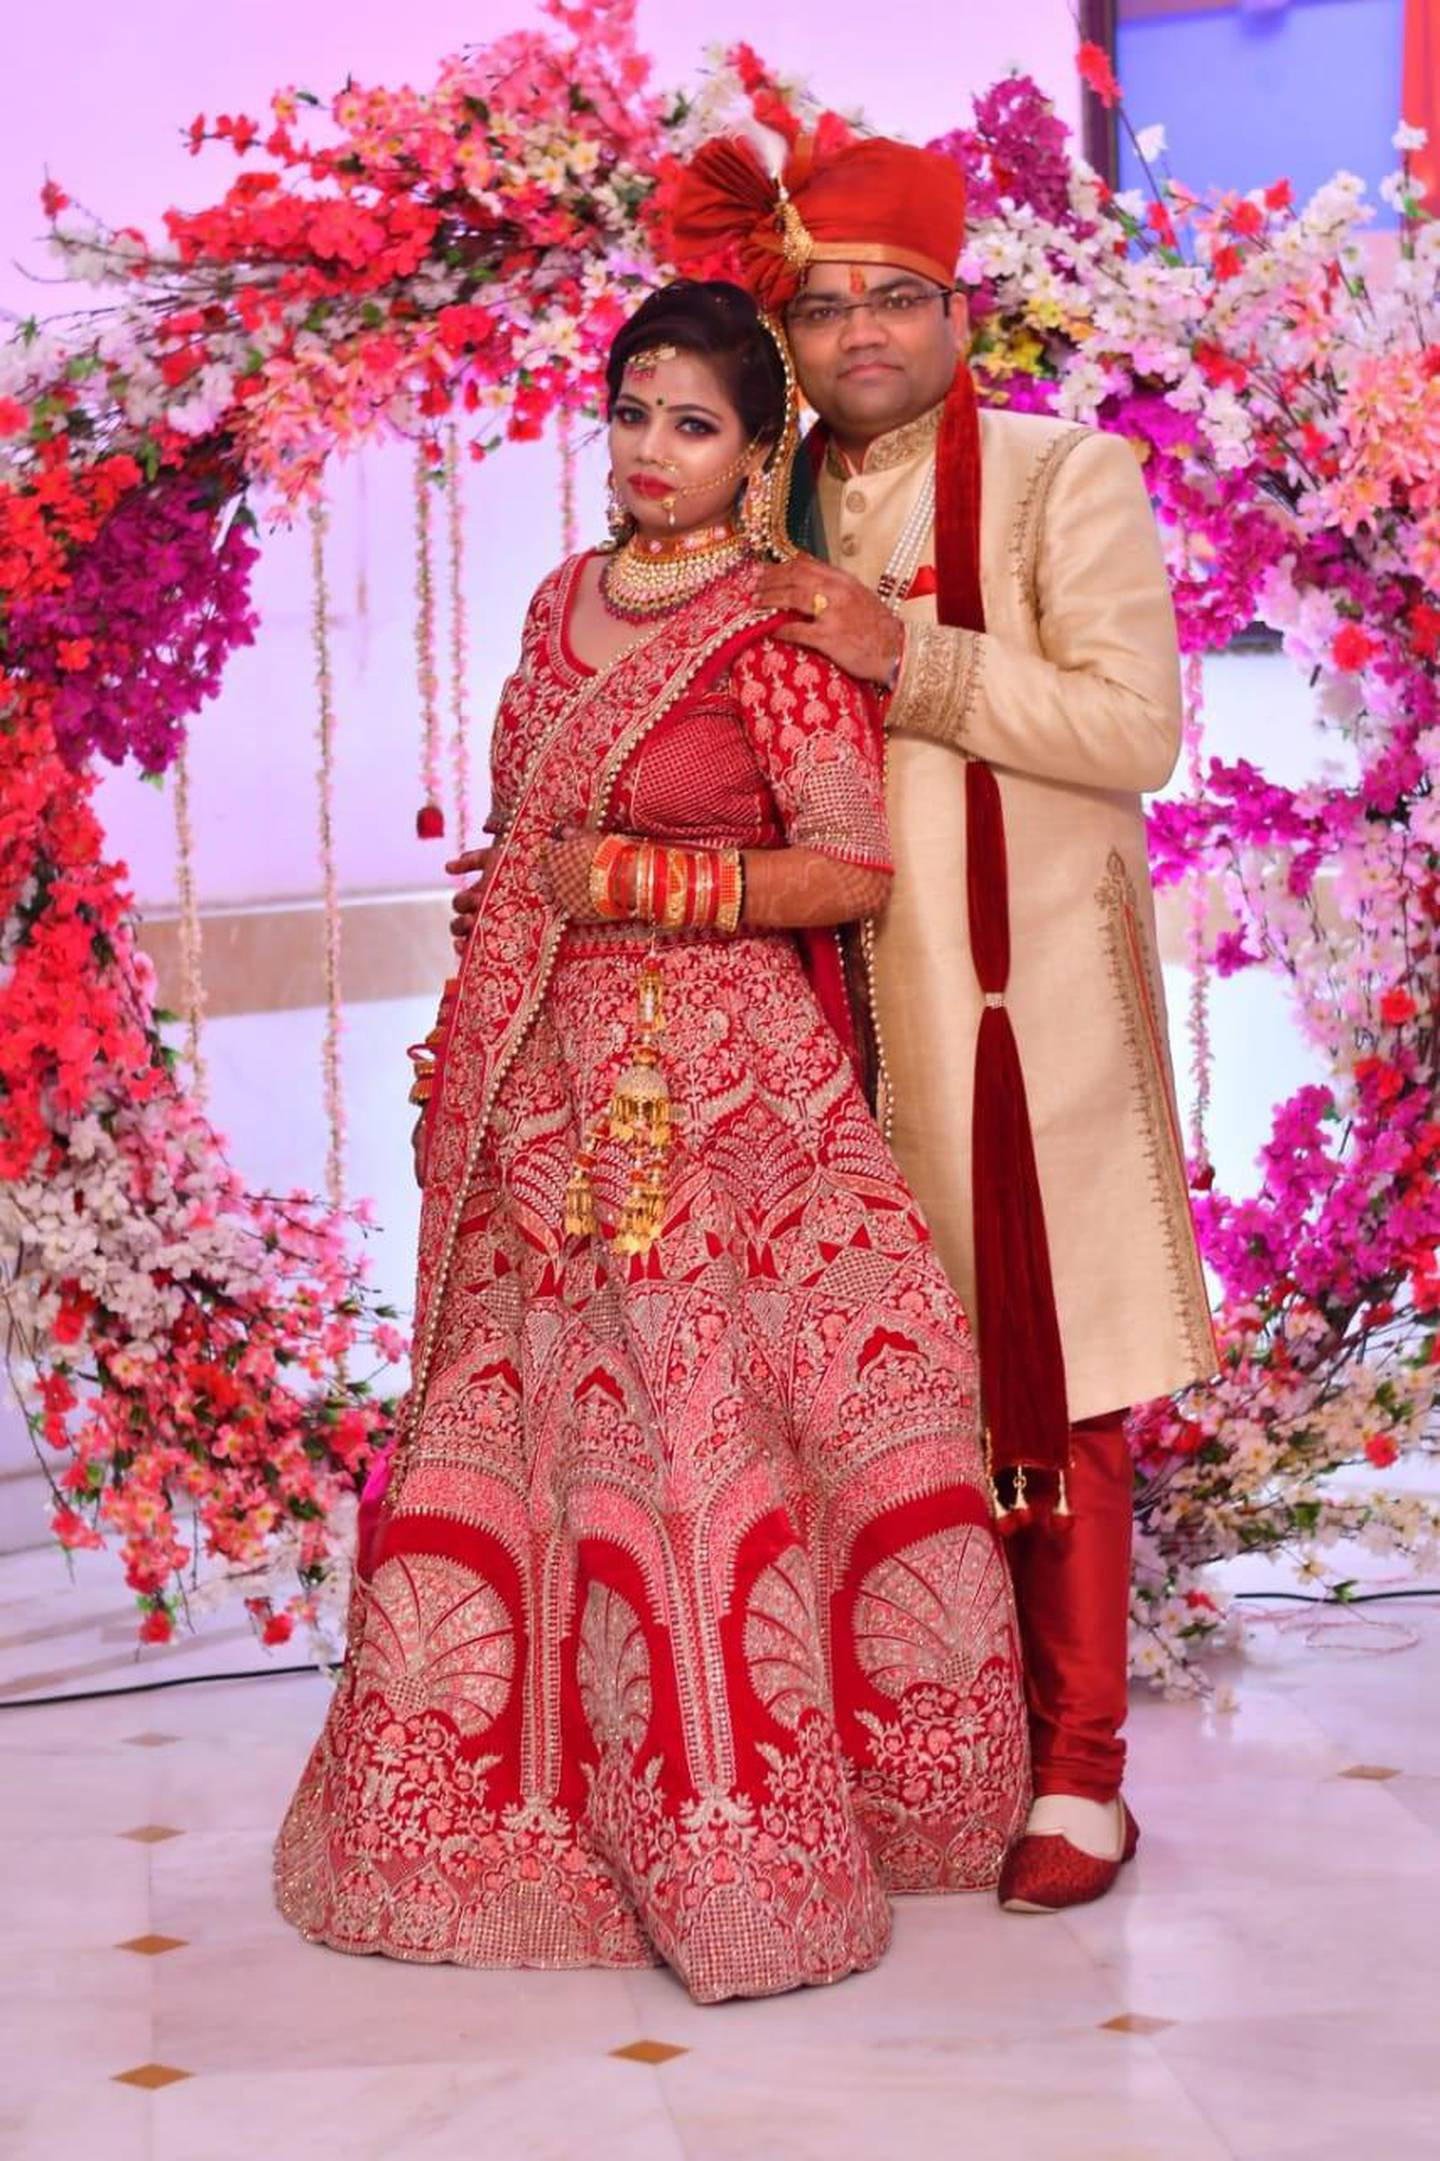 Vishal Porwal, a 37-year-old Indian resident in Dubai and his wife Neha Porwal at their wedding in Kanpur in May.Photo: Vishal Porwal